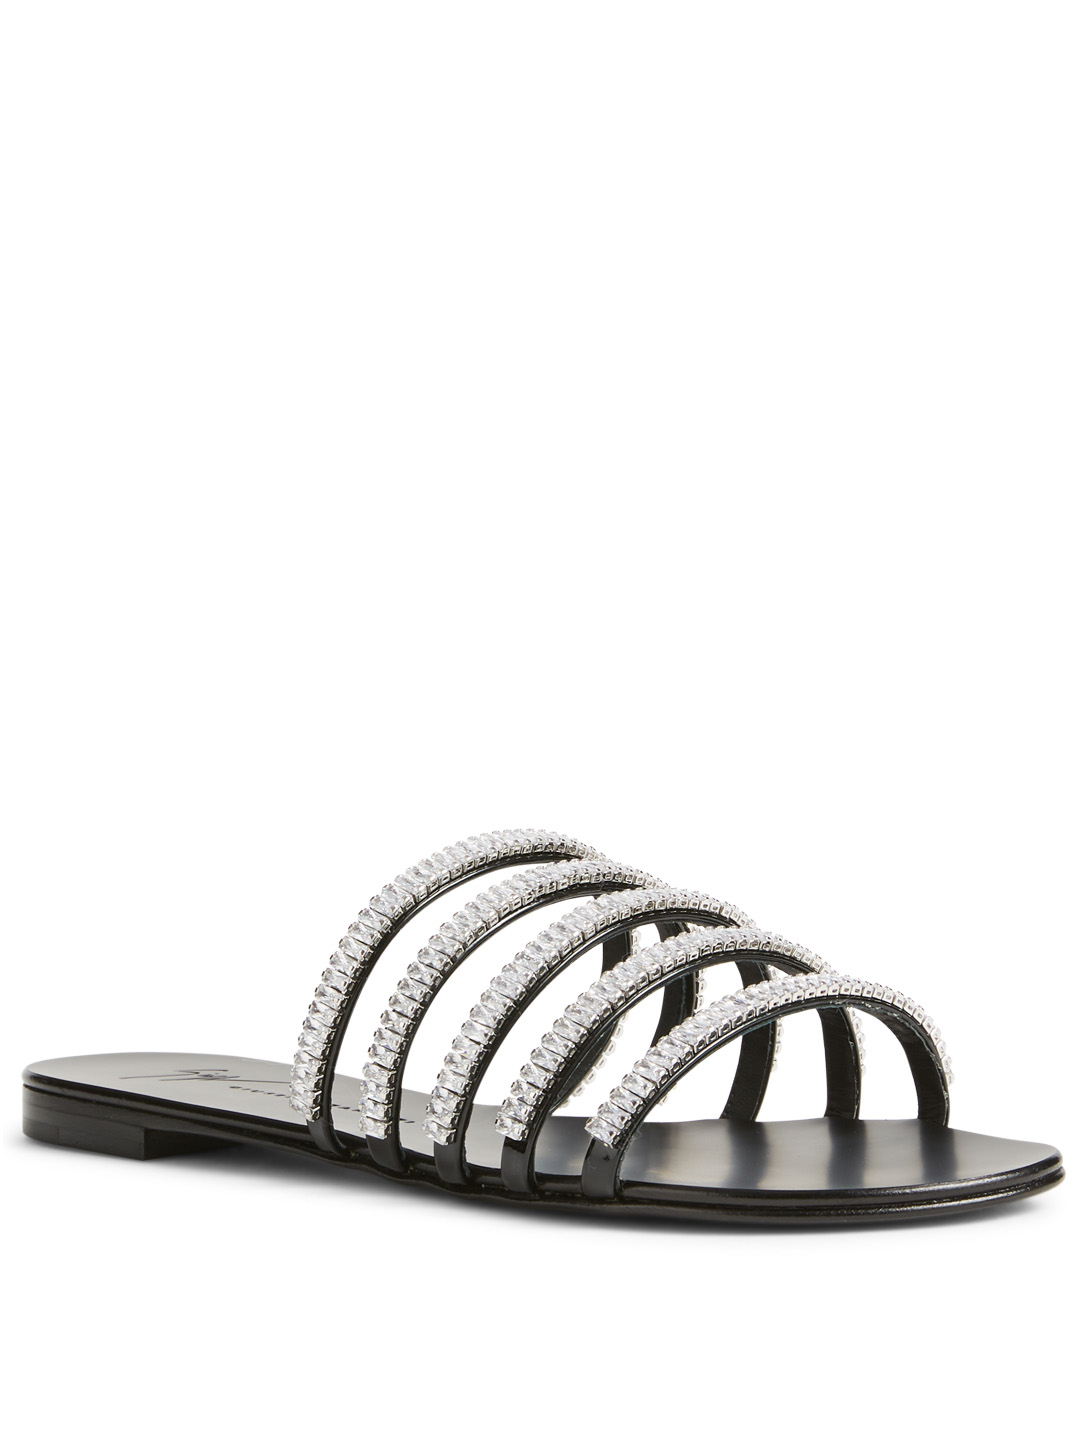 GIUSEPPE ZANOTTI Michela Metallic Leather Crystal Sandals Womens Black